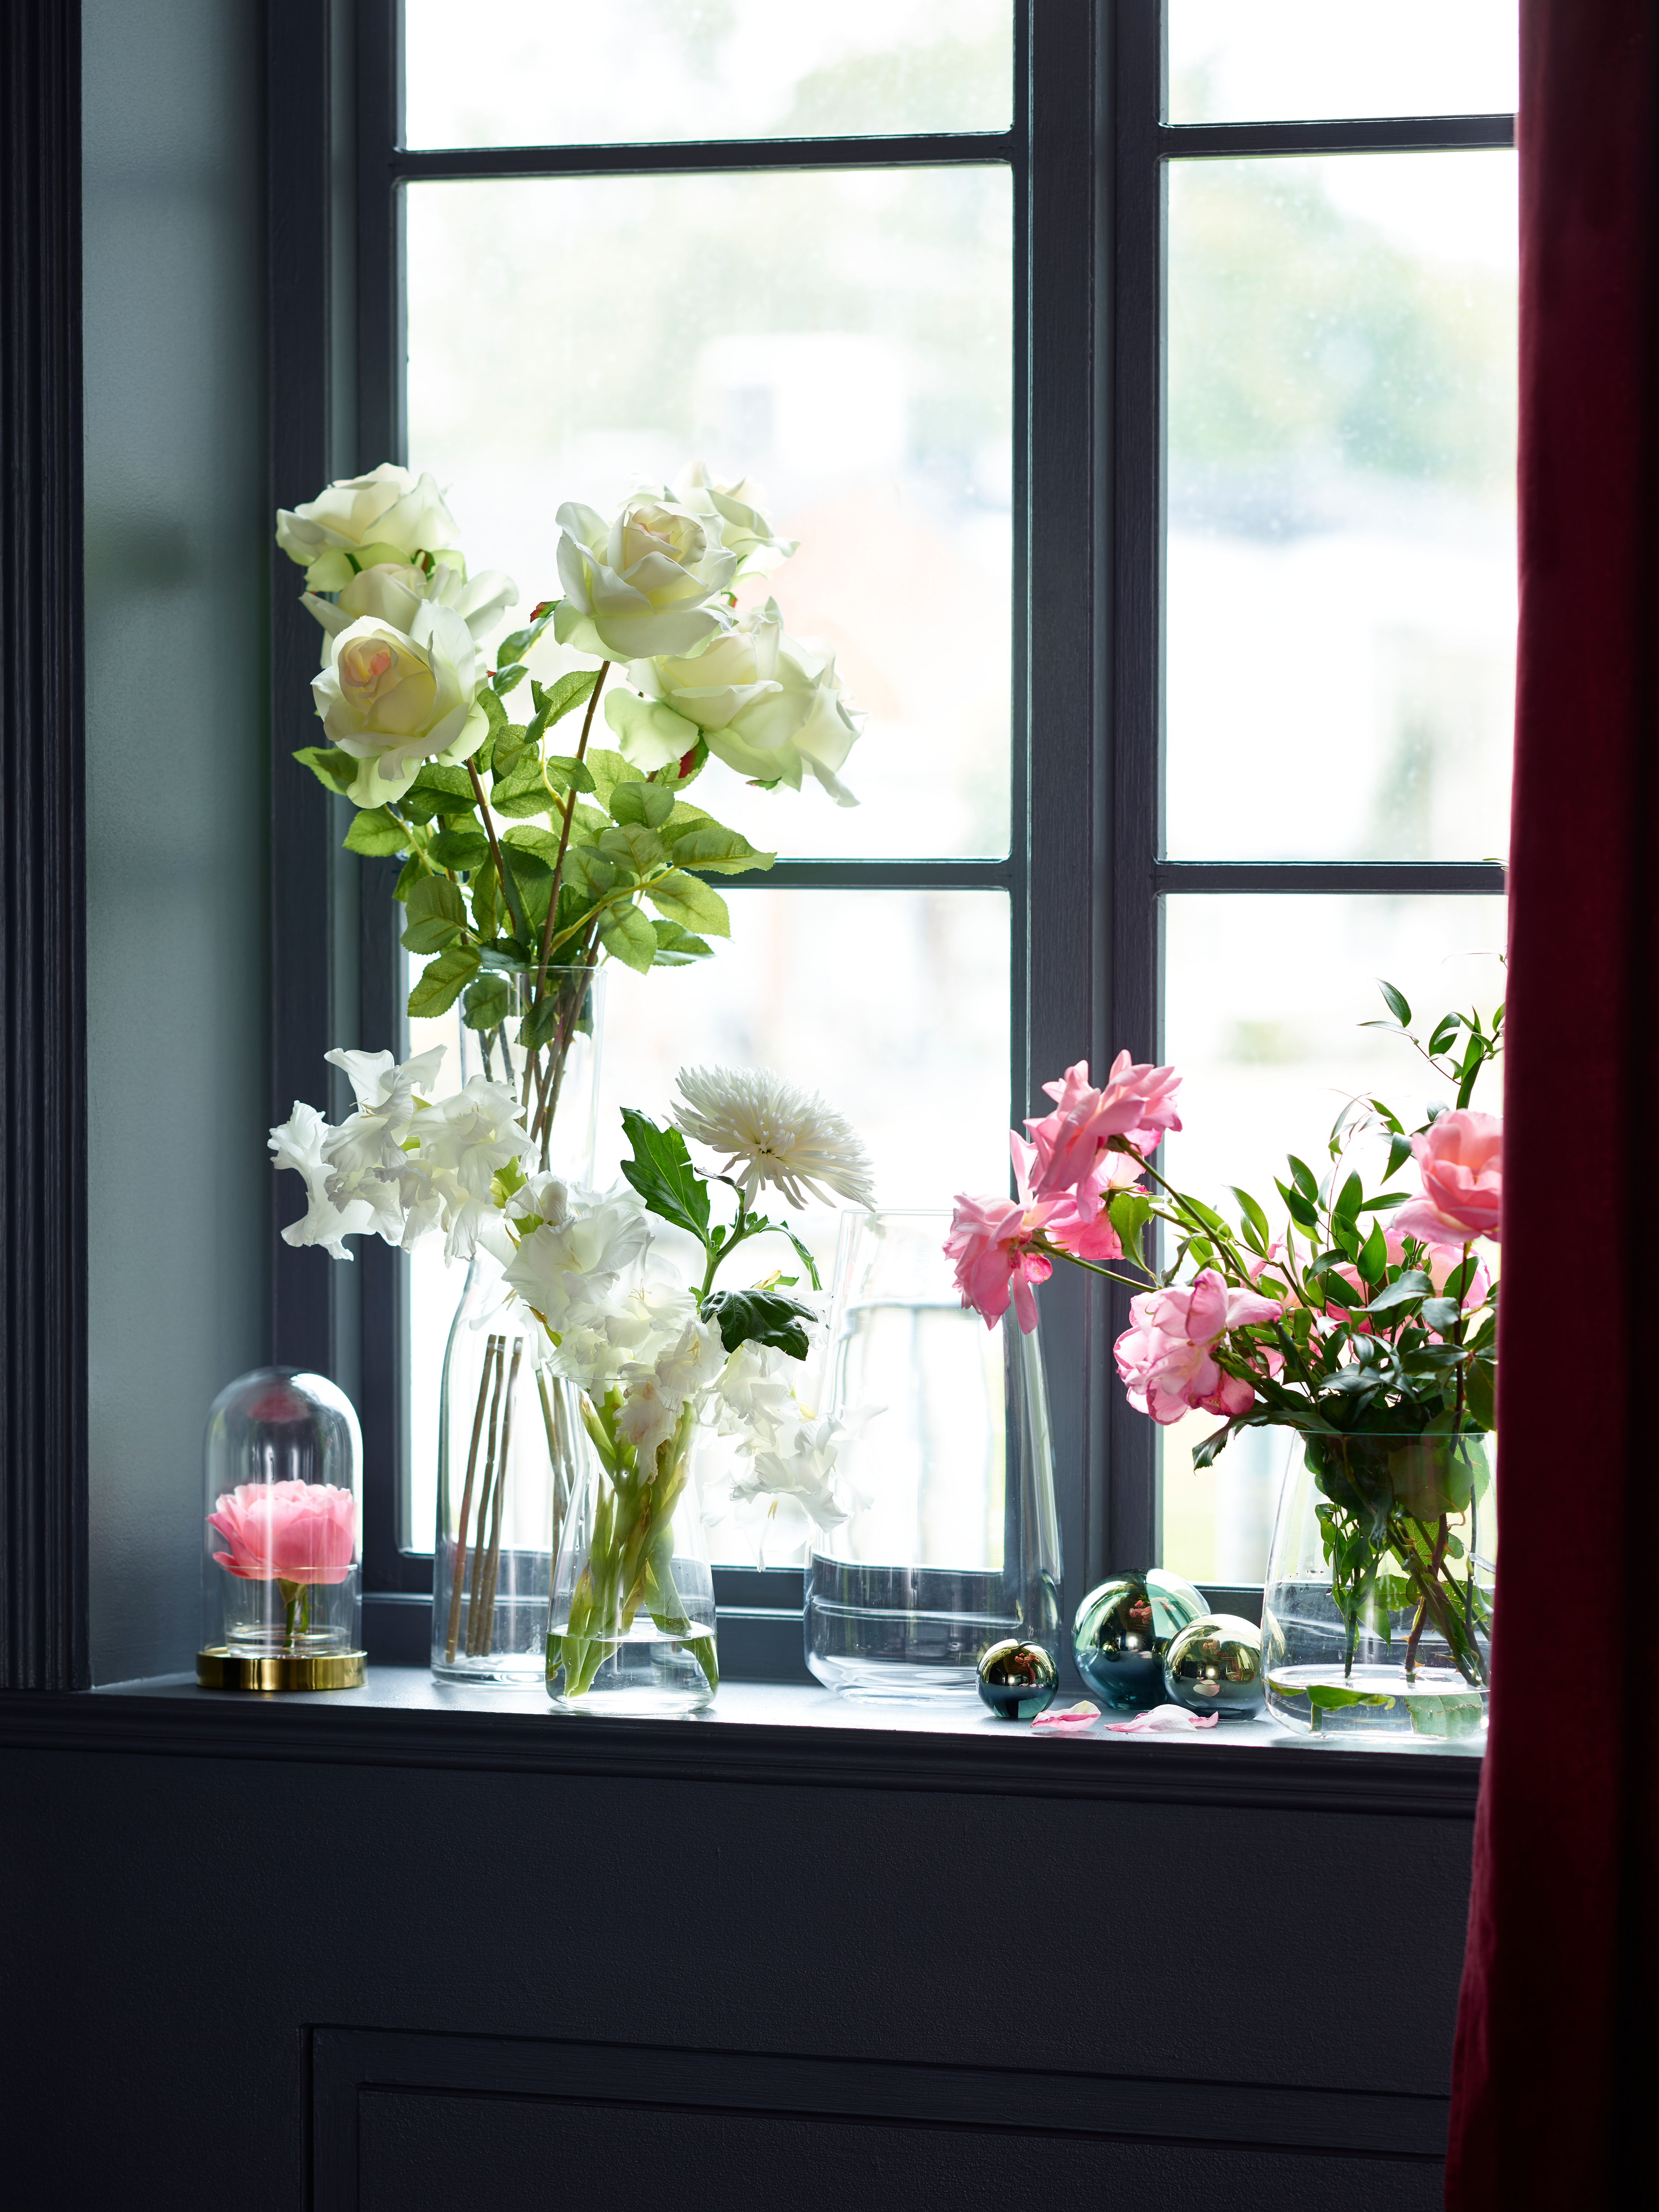 Several clear glass BERÄKNA vases hold pink and white flowers. They sit on a deep windowsill near a light-filled window.